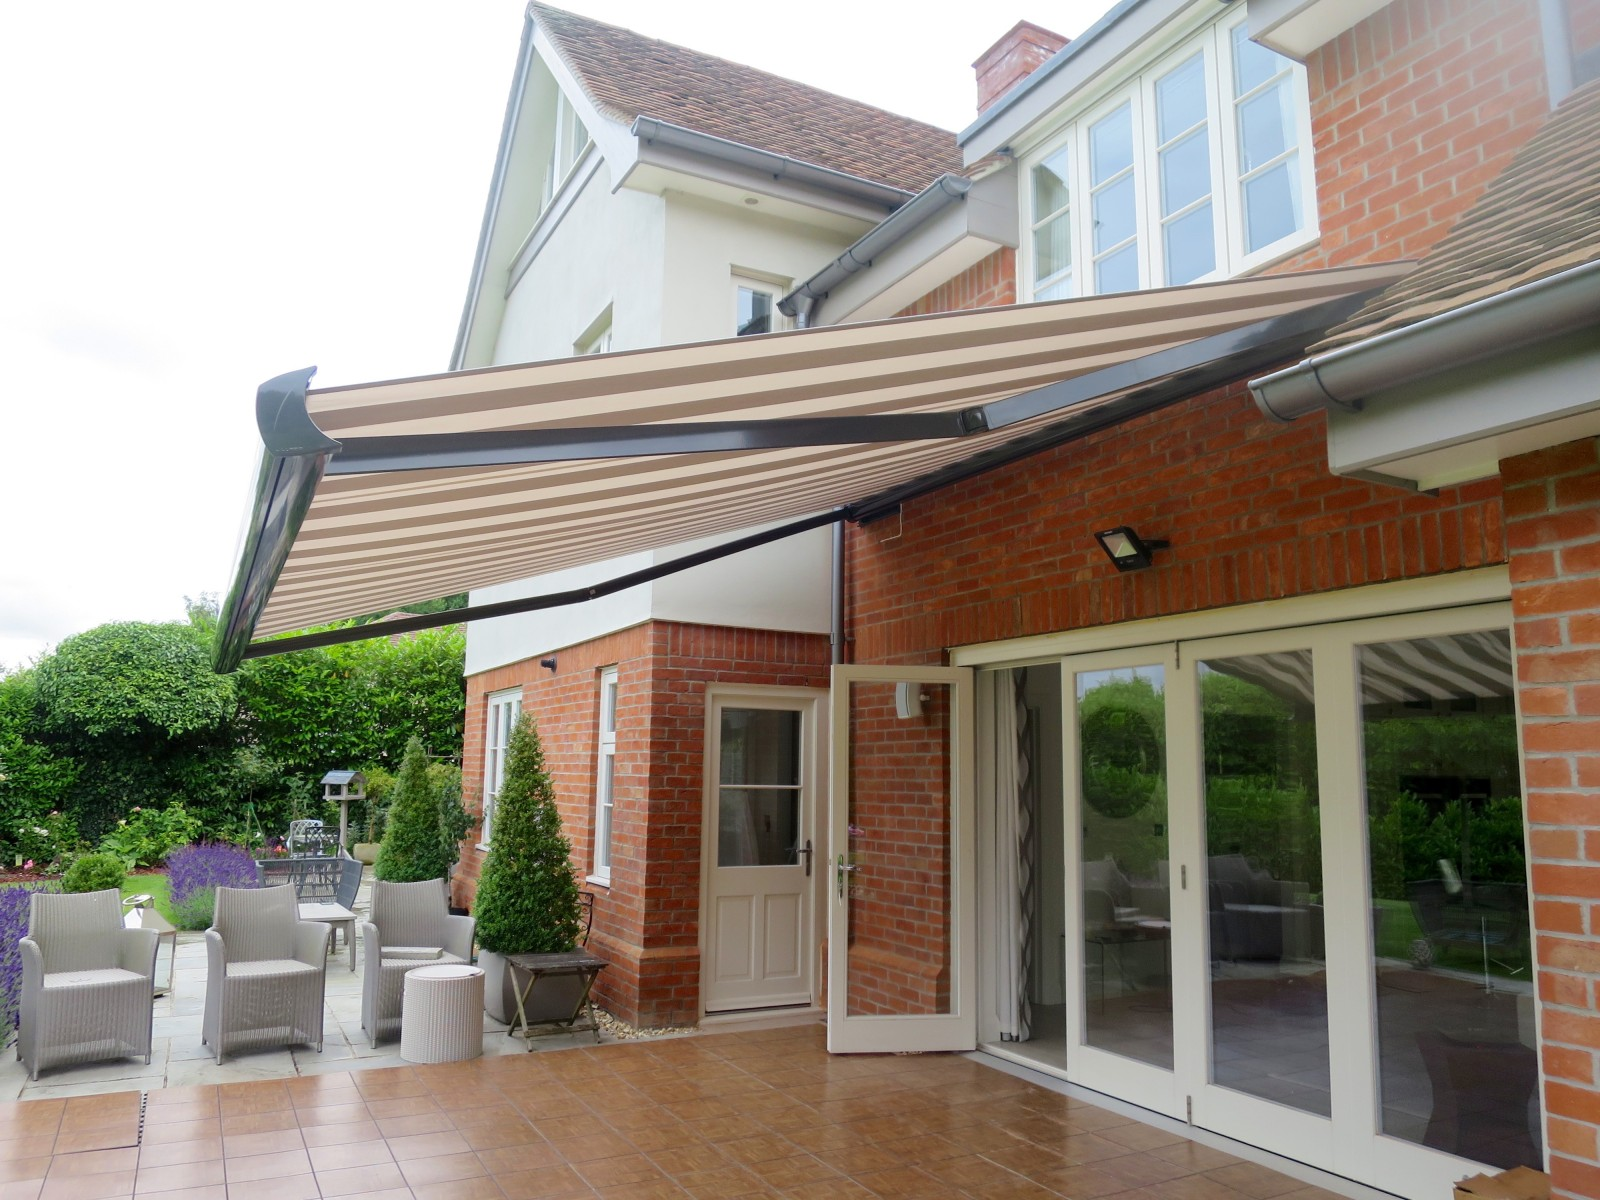 95 Electric Awnings For Home